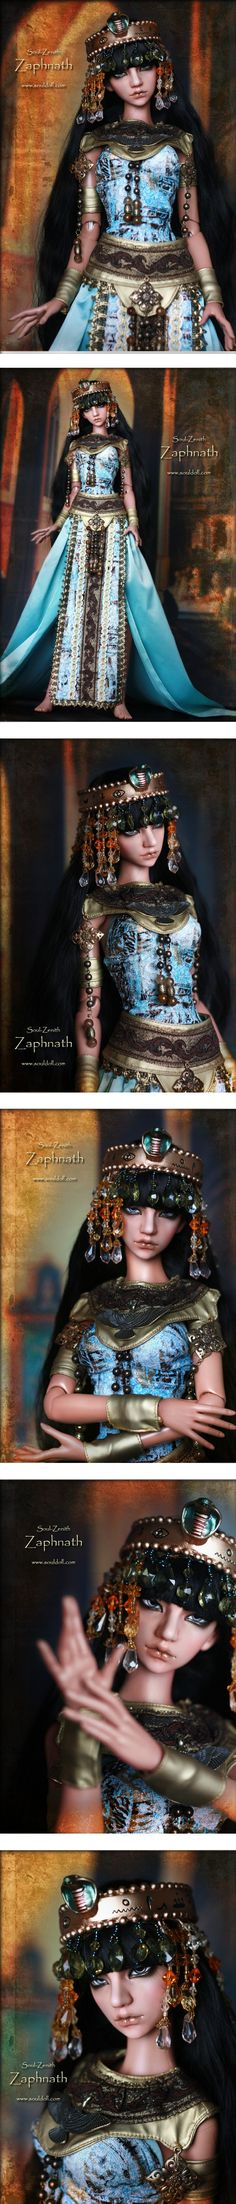 Zaphnath 63cm, Soul Doll - BJD Dolls, Accessories - Alice's Collections